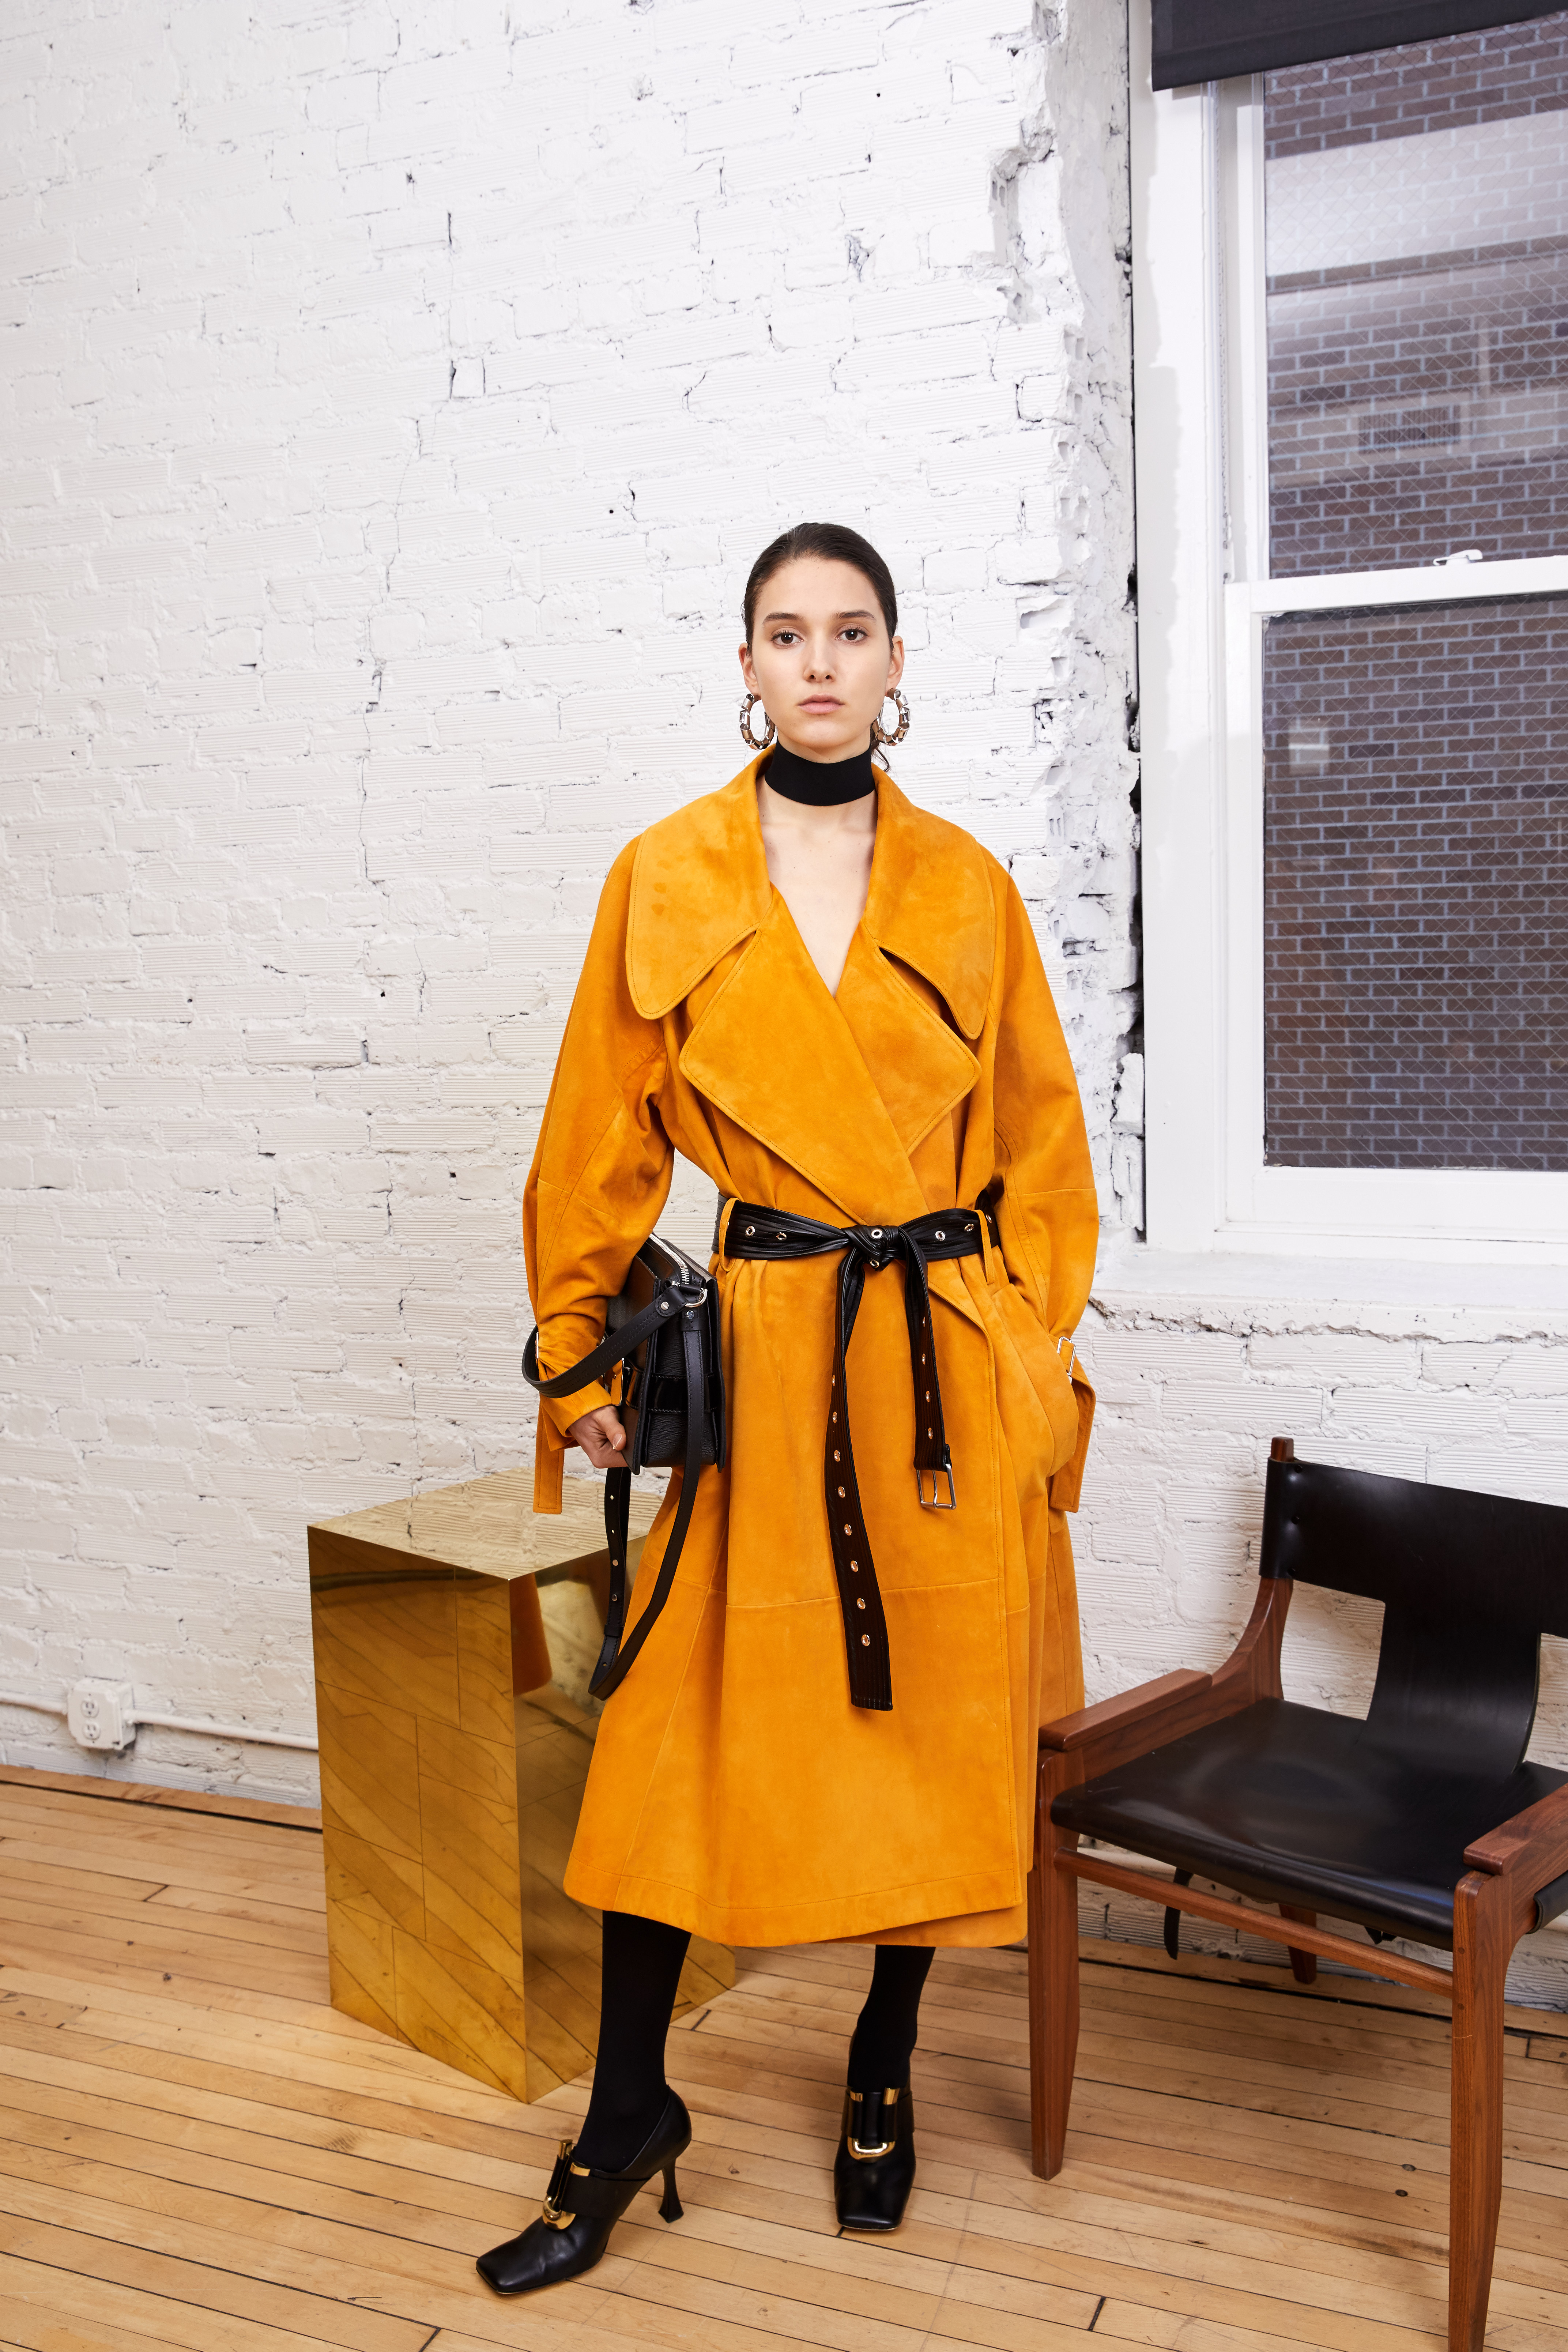 From pre-fall, a grommeted belt adds edge to a roomy suede coat, shown with a leather Trapeze buckle bag and square-toed pumps. Accessories development is a major focus of the brand.